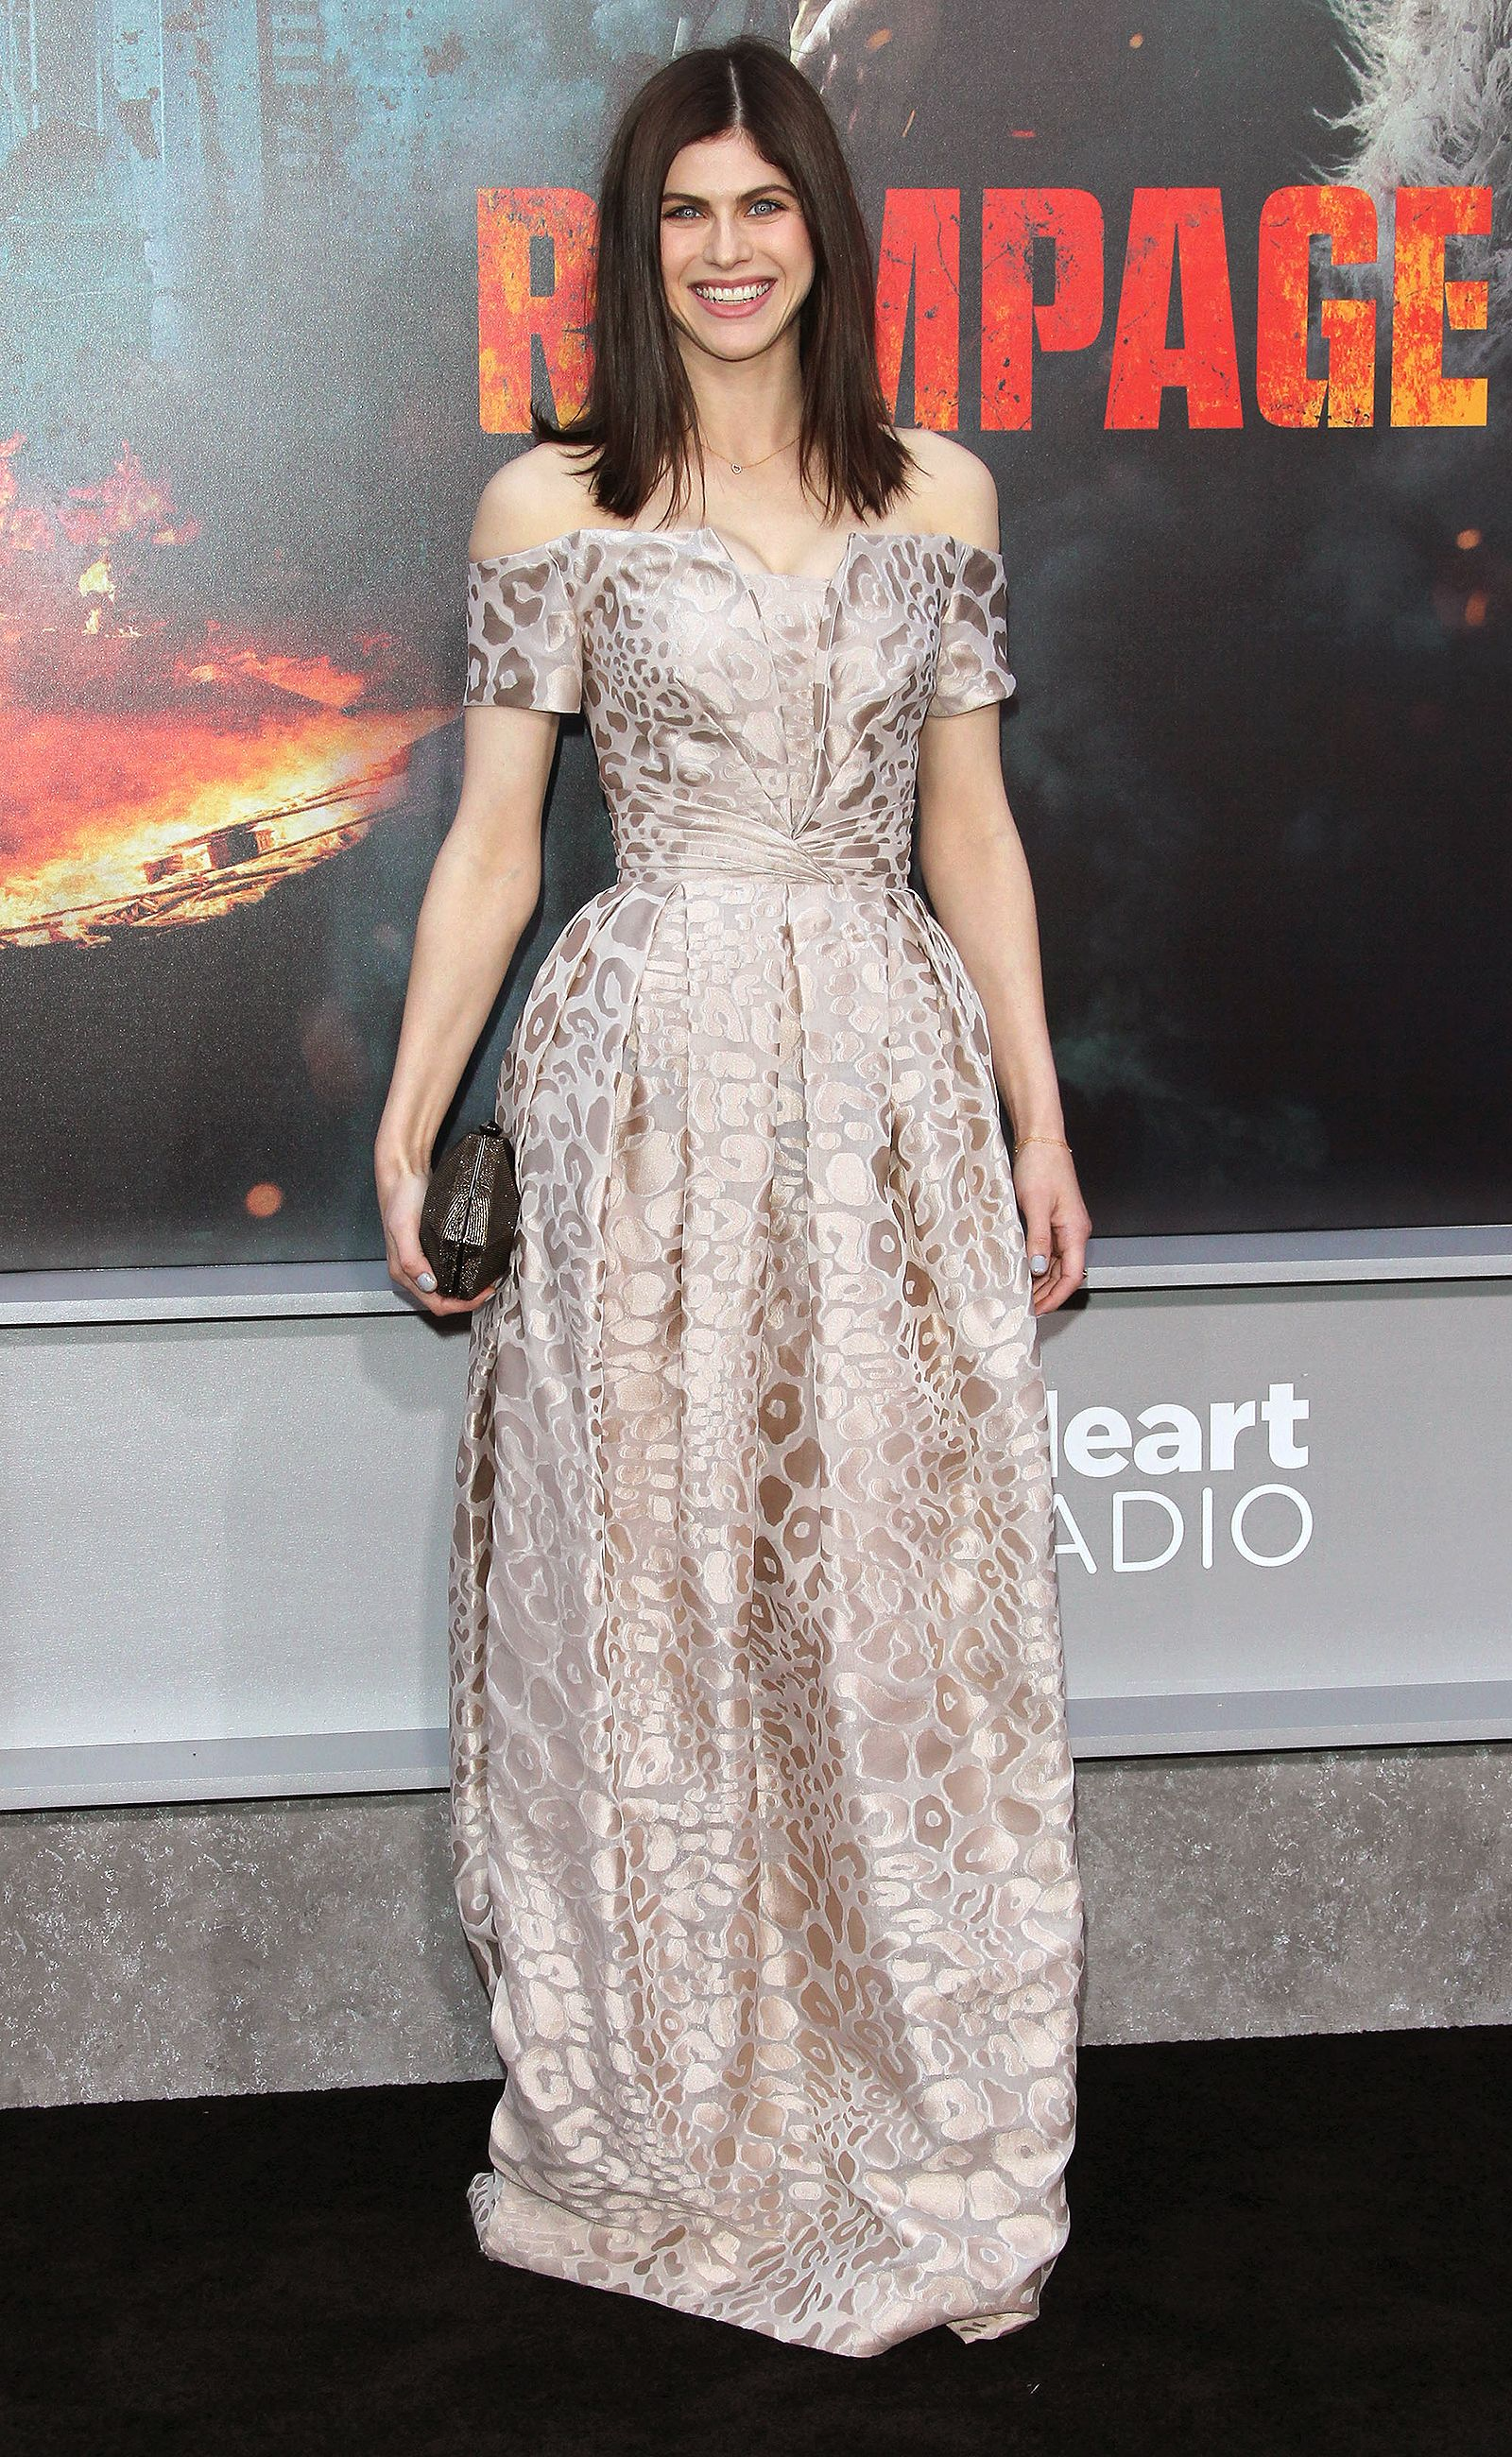 be194f77cda7 ... Pretty in Pink - and More Red Carpet Outfits You Have to See. ALEXANDRA  DADDARIO. ALEXANDRA DADDARIO Alexandra Daddario, Emily Blunt, Celebrity  Outfits, ...